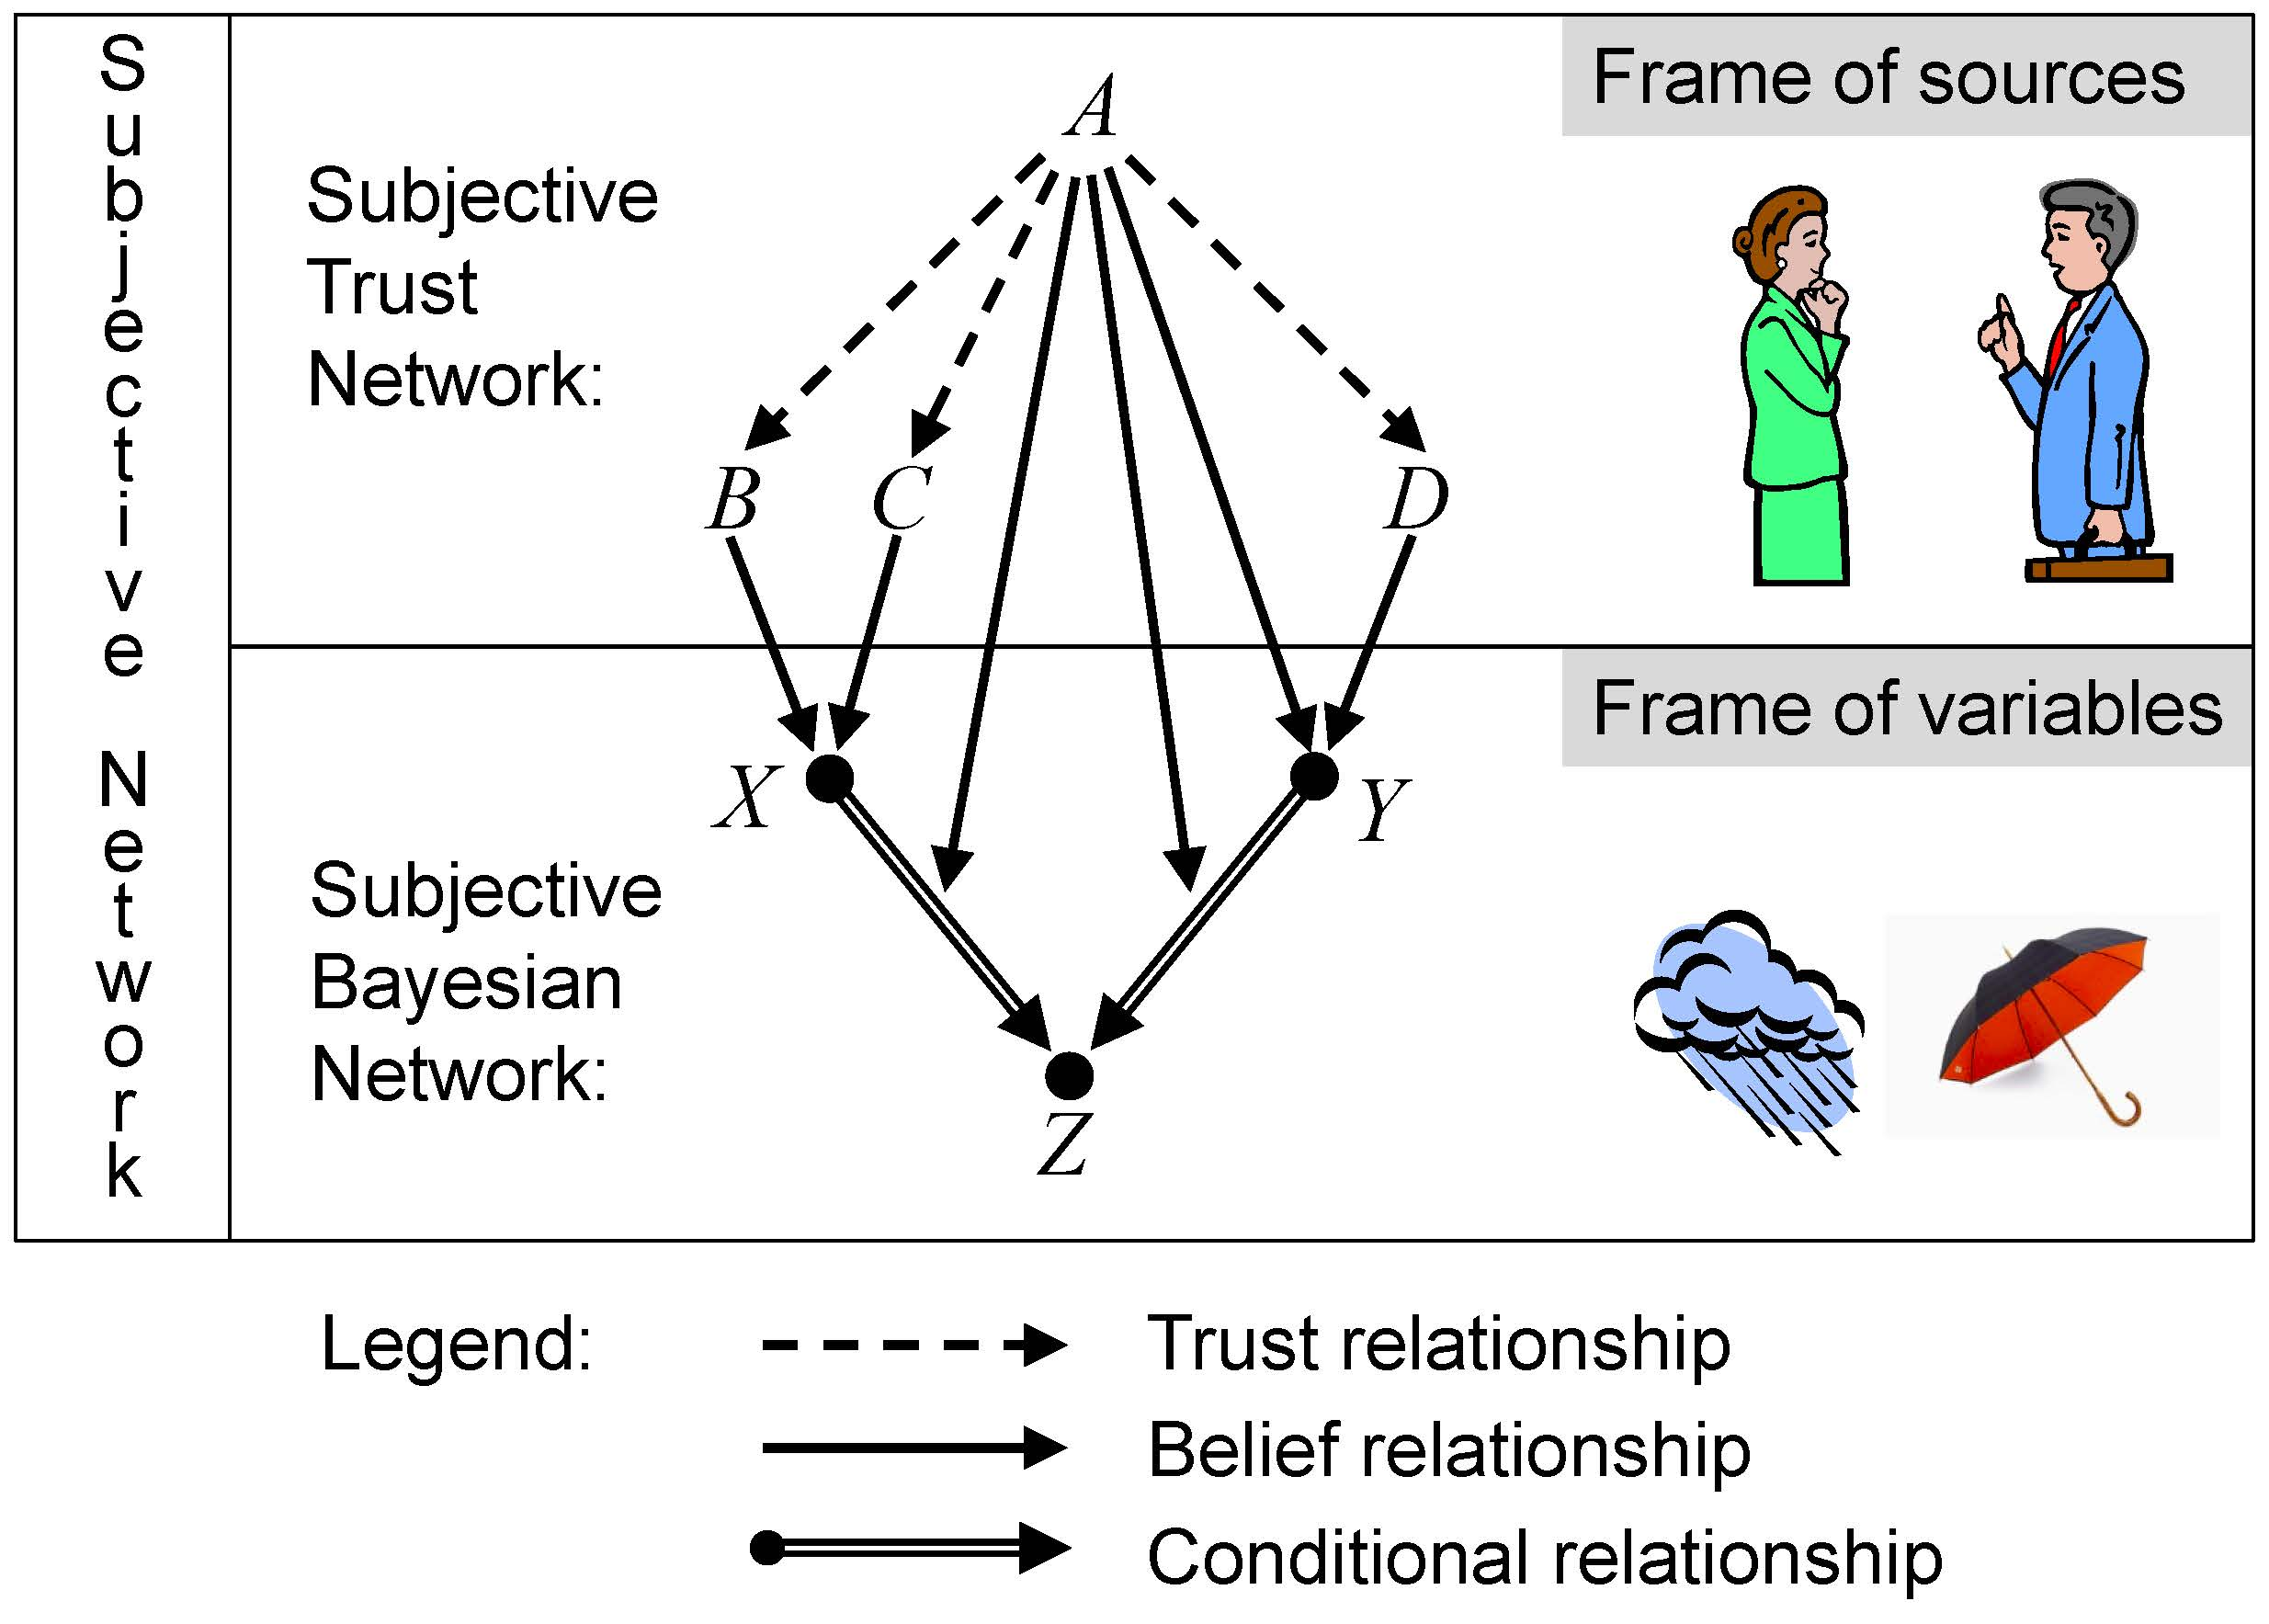 Plot Diagram Poster: Subjective network.jpg - Wikipedia,Chart